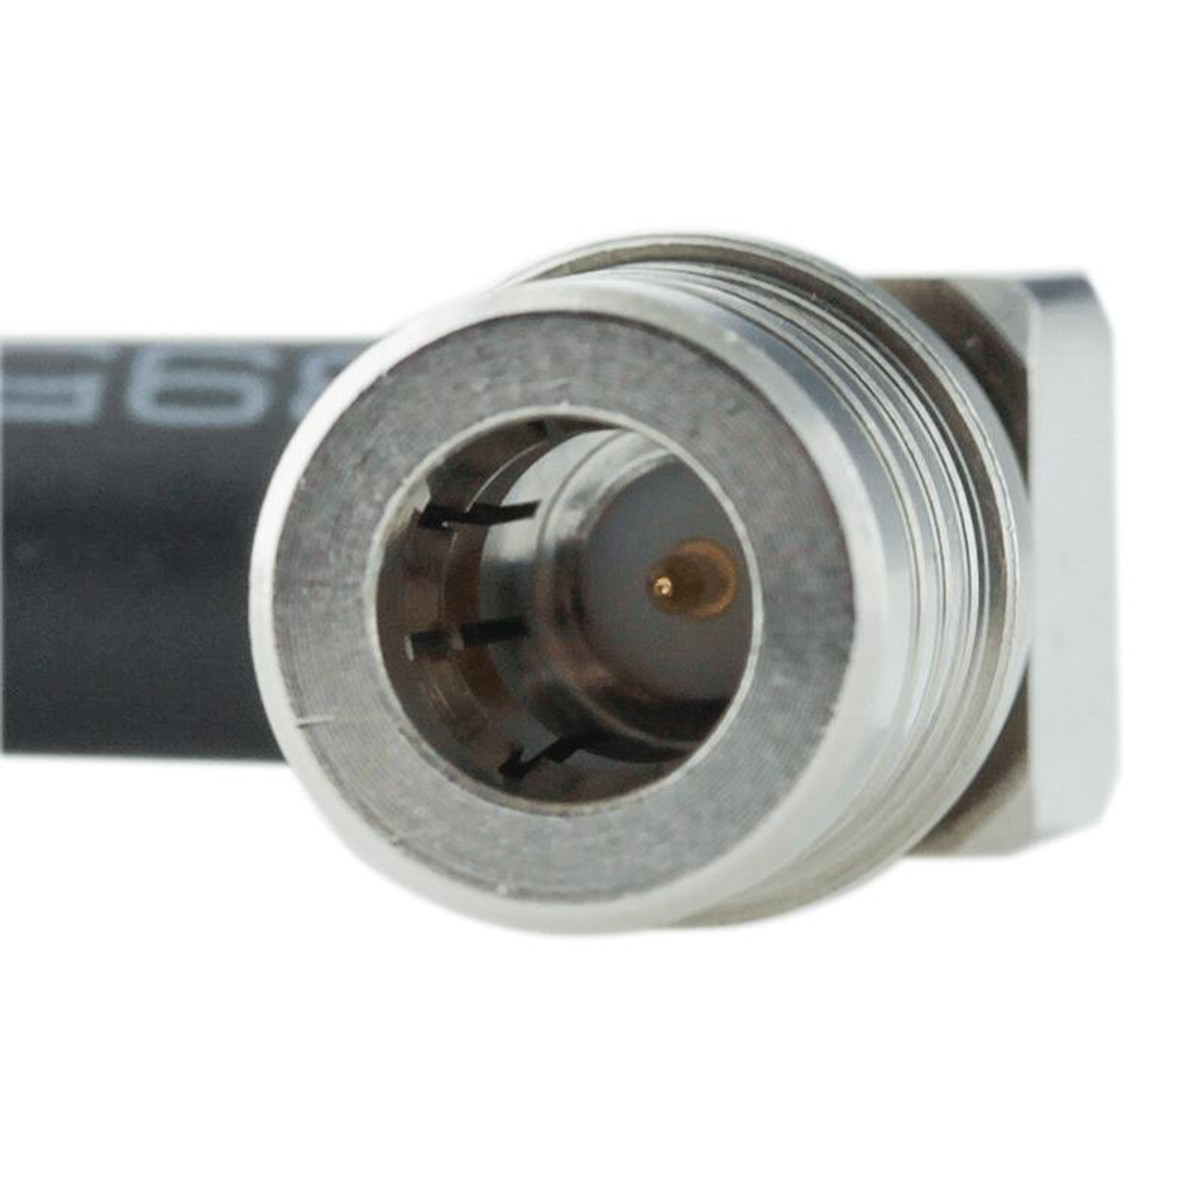 Bolton Tech Bolton Technical 2 meter N-Female Bulkhead to QMA-Male Angle Coax RF Pigtail Cable